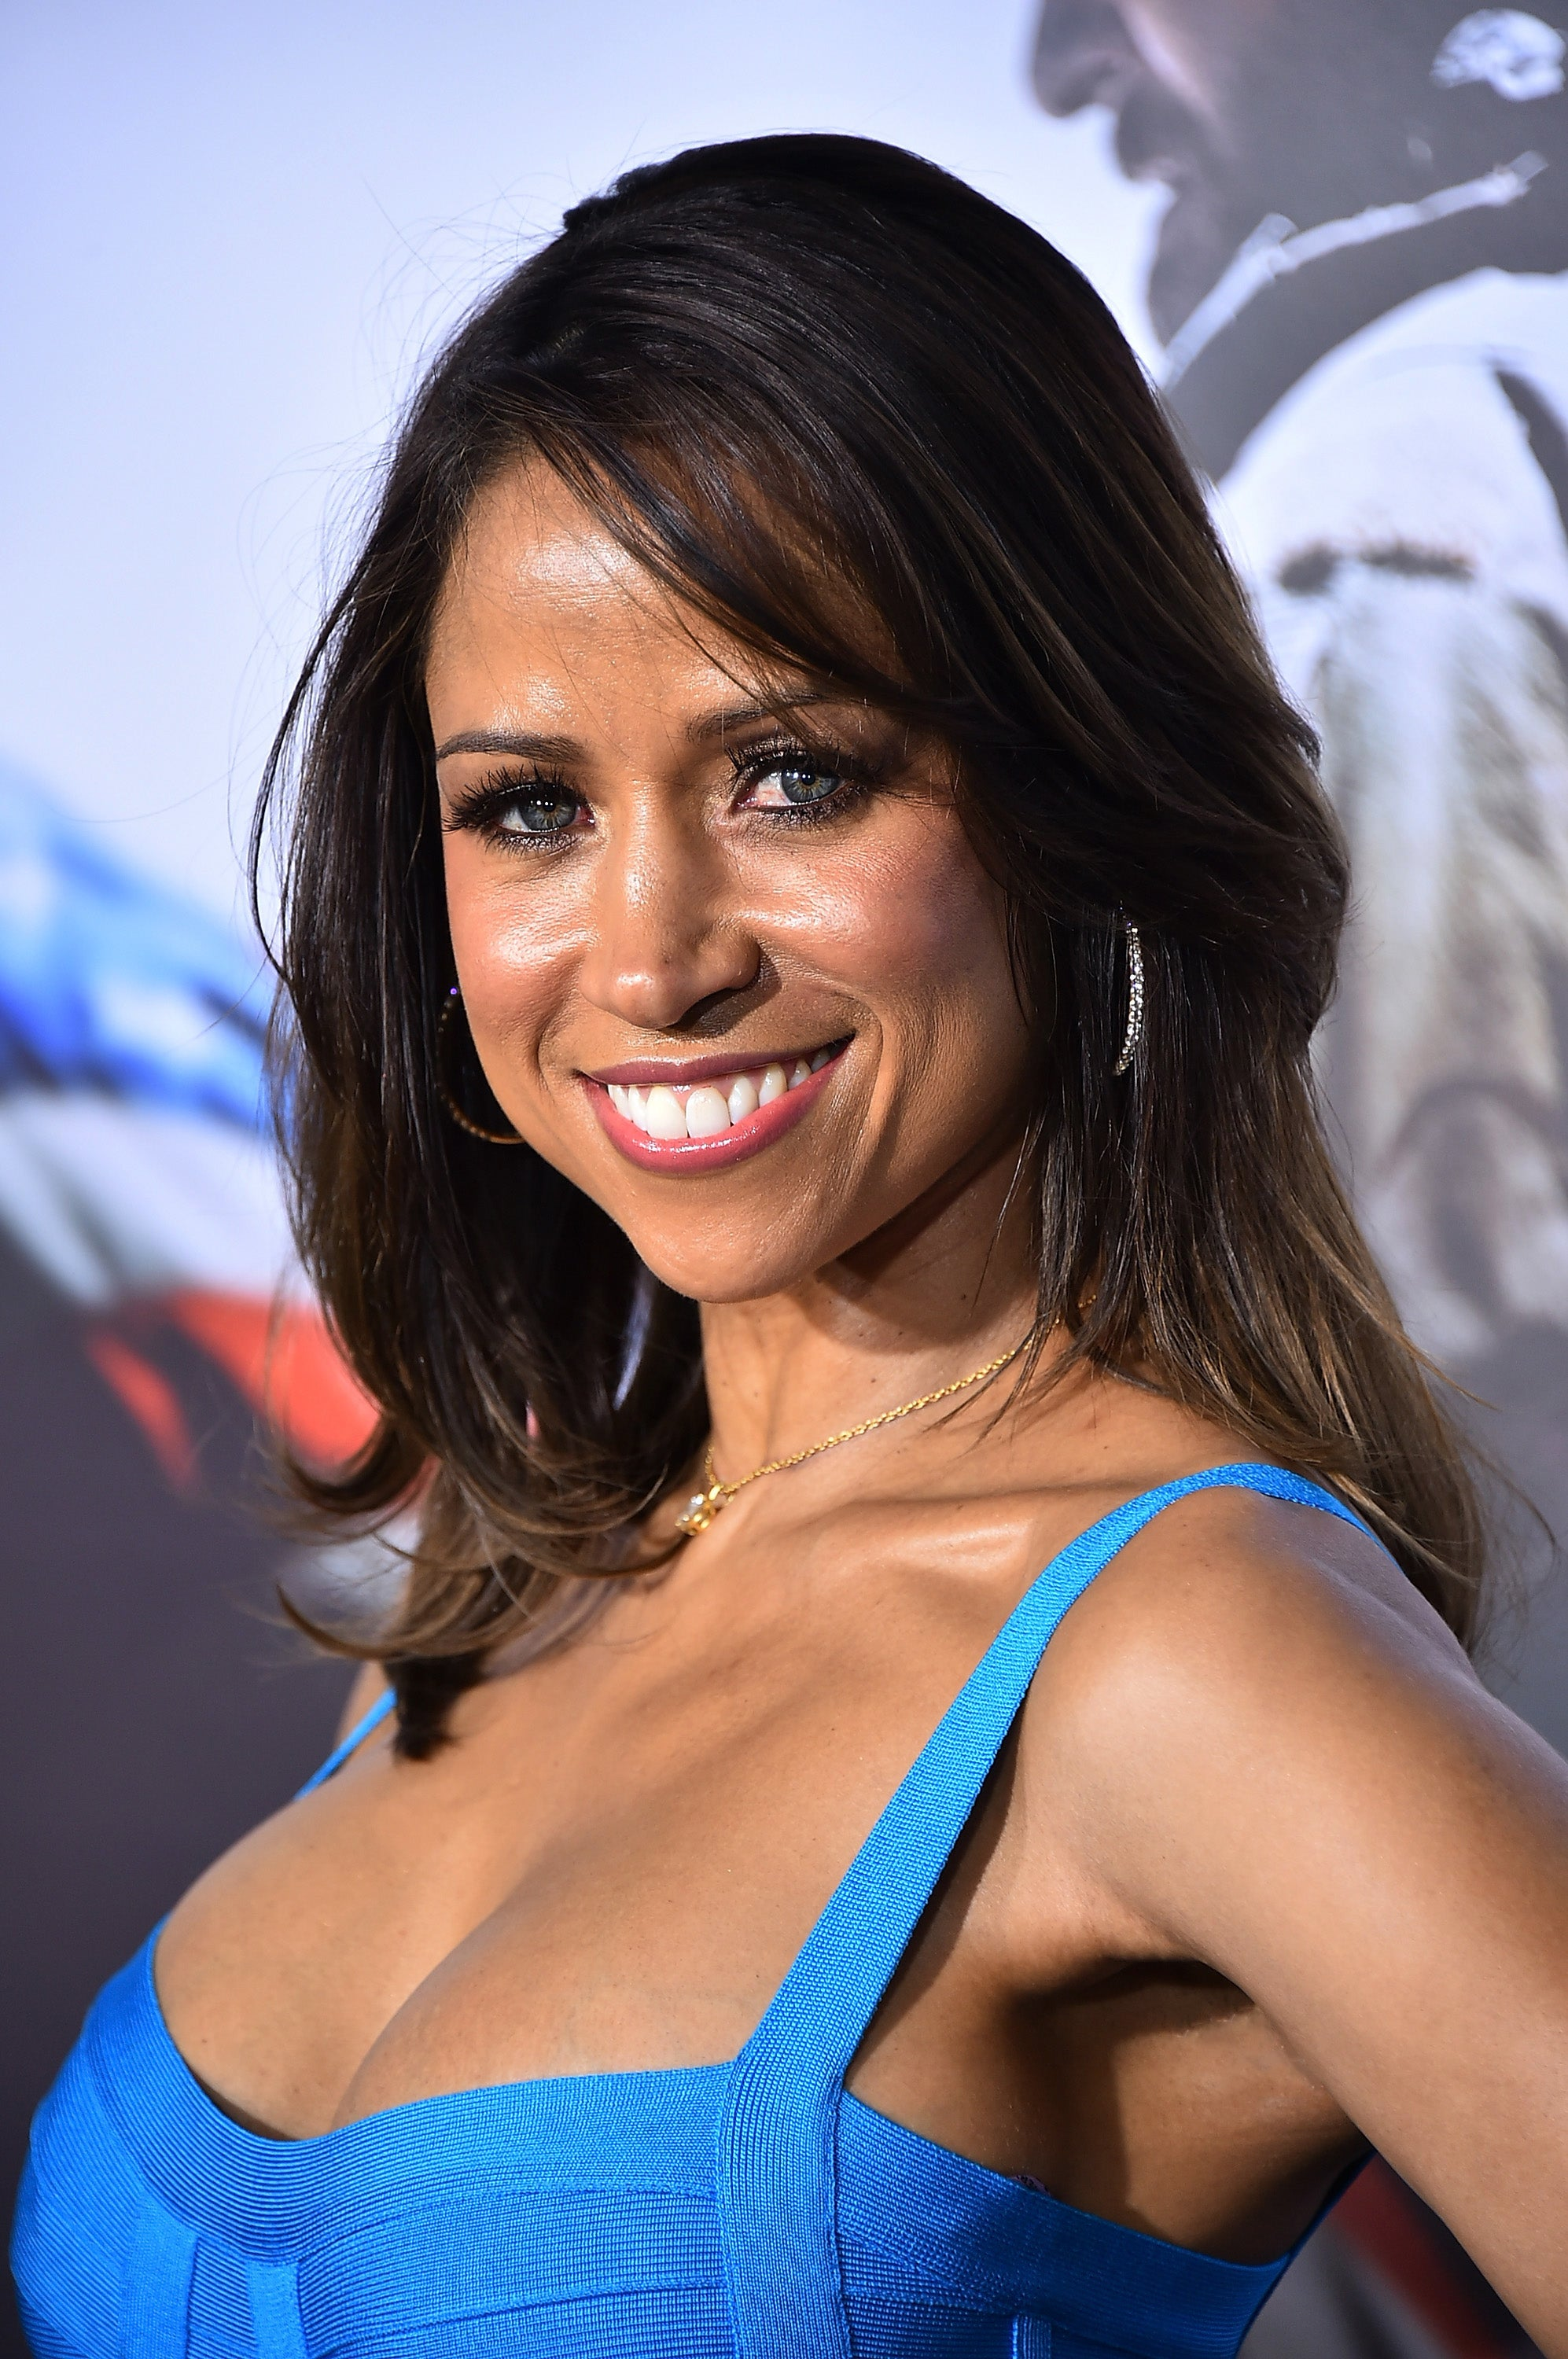 Stacey Dash nude (56 photo), Topless, Cleavage, Twitter, panties 2020